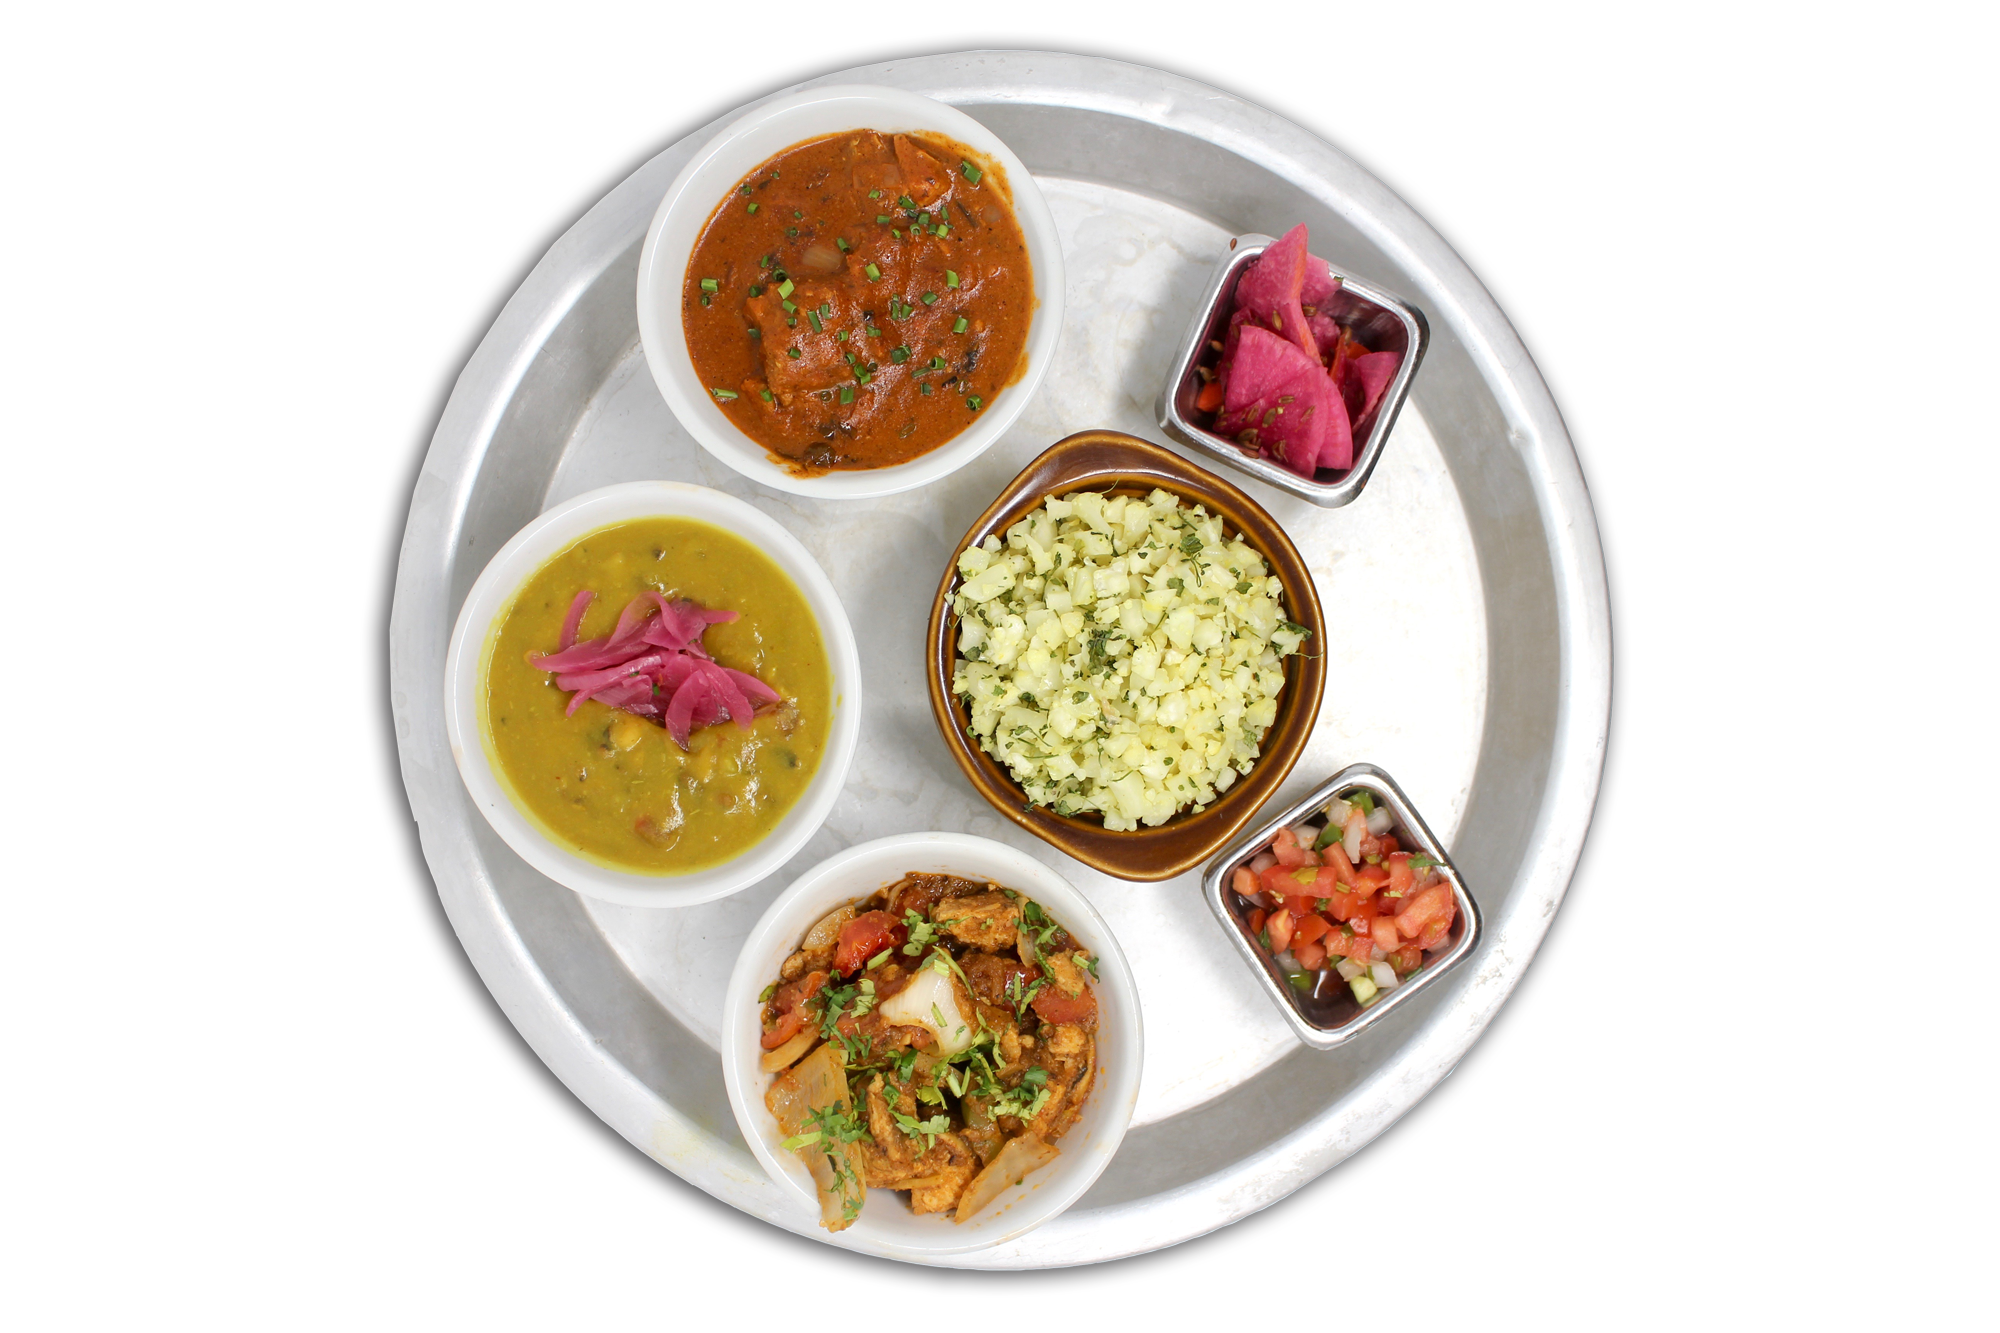 LITE THALI   riced cauliflower, daal lentils, kadhai chicken or free range plant protein (V), chicken or paneer tikka masala (VG), pico and pickles (GF)